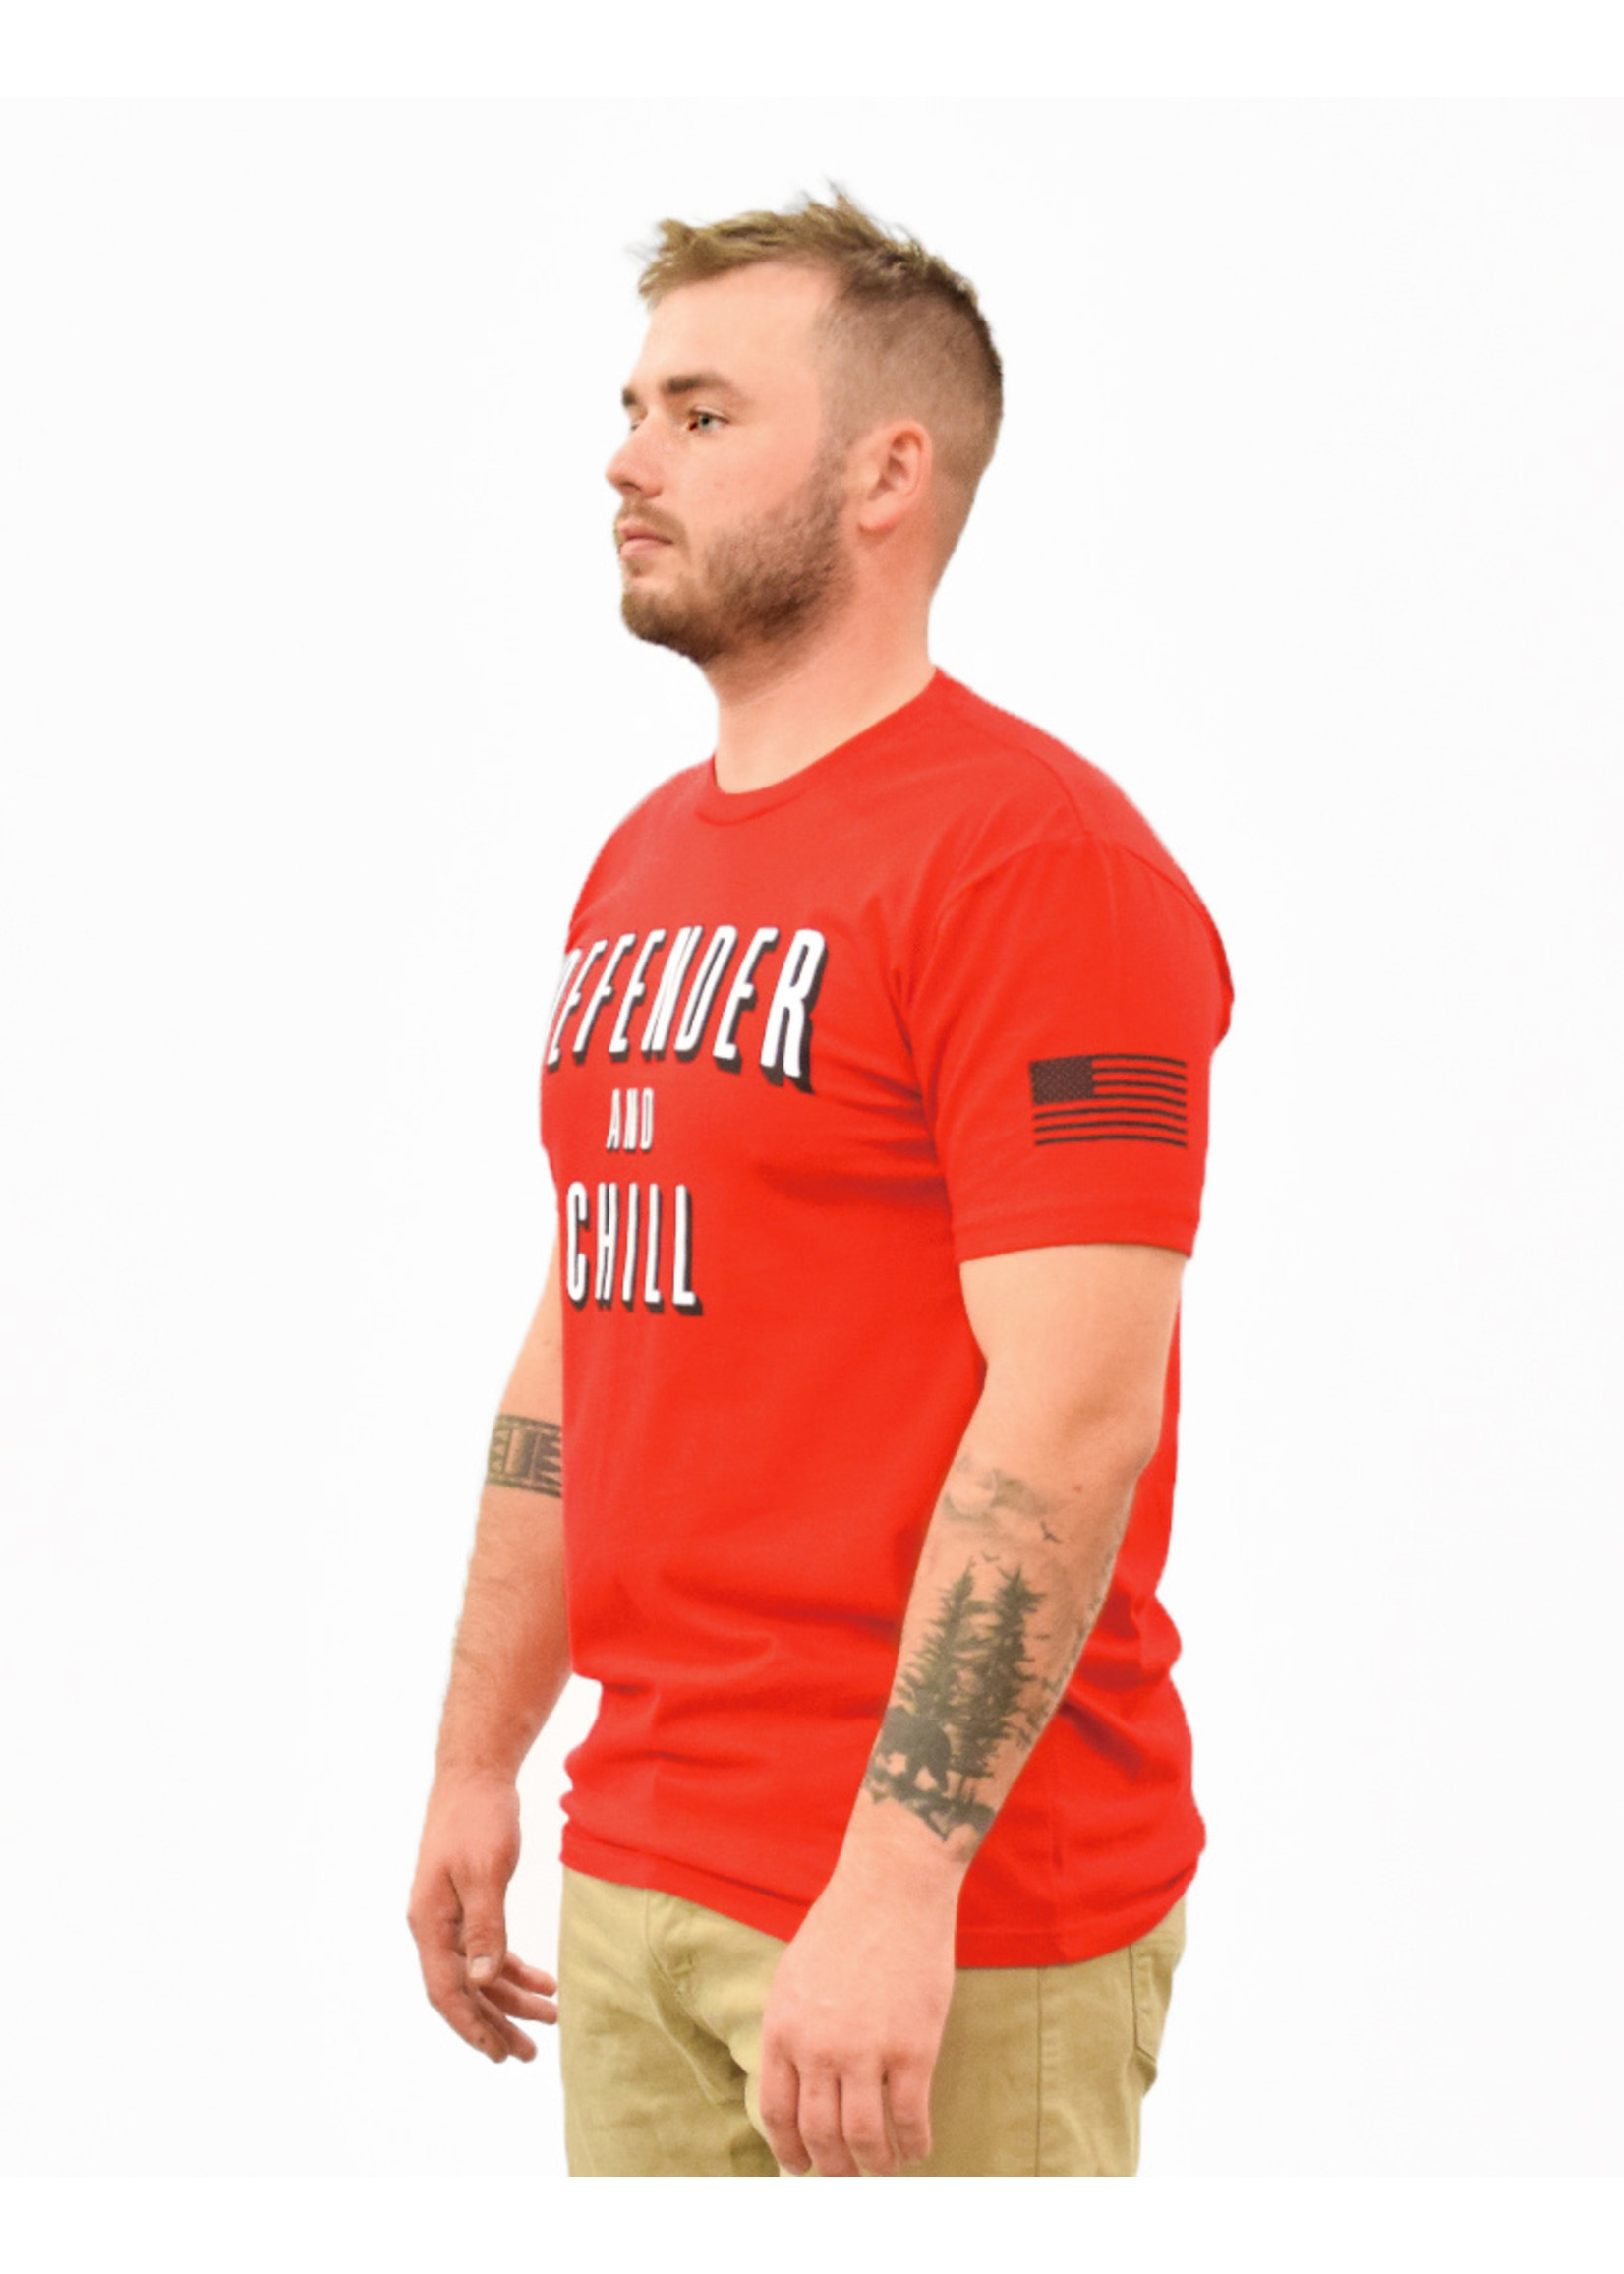 Defender and Chill T-Shirt